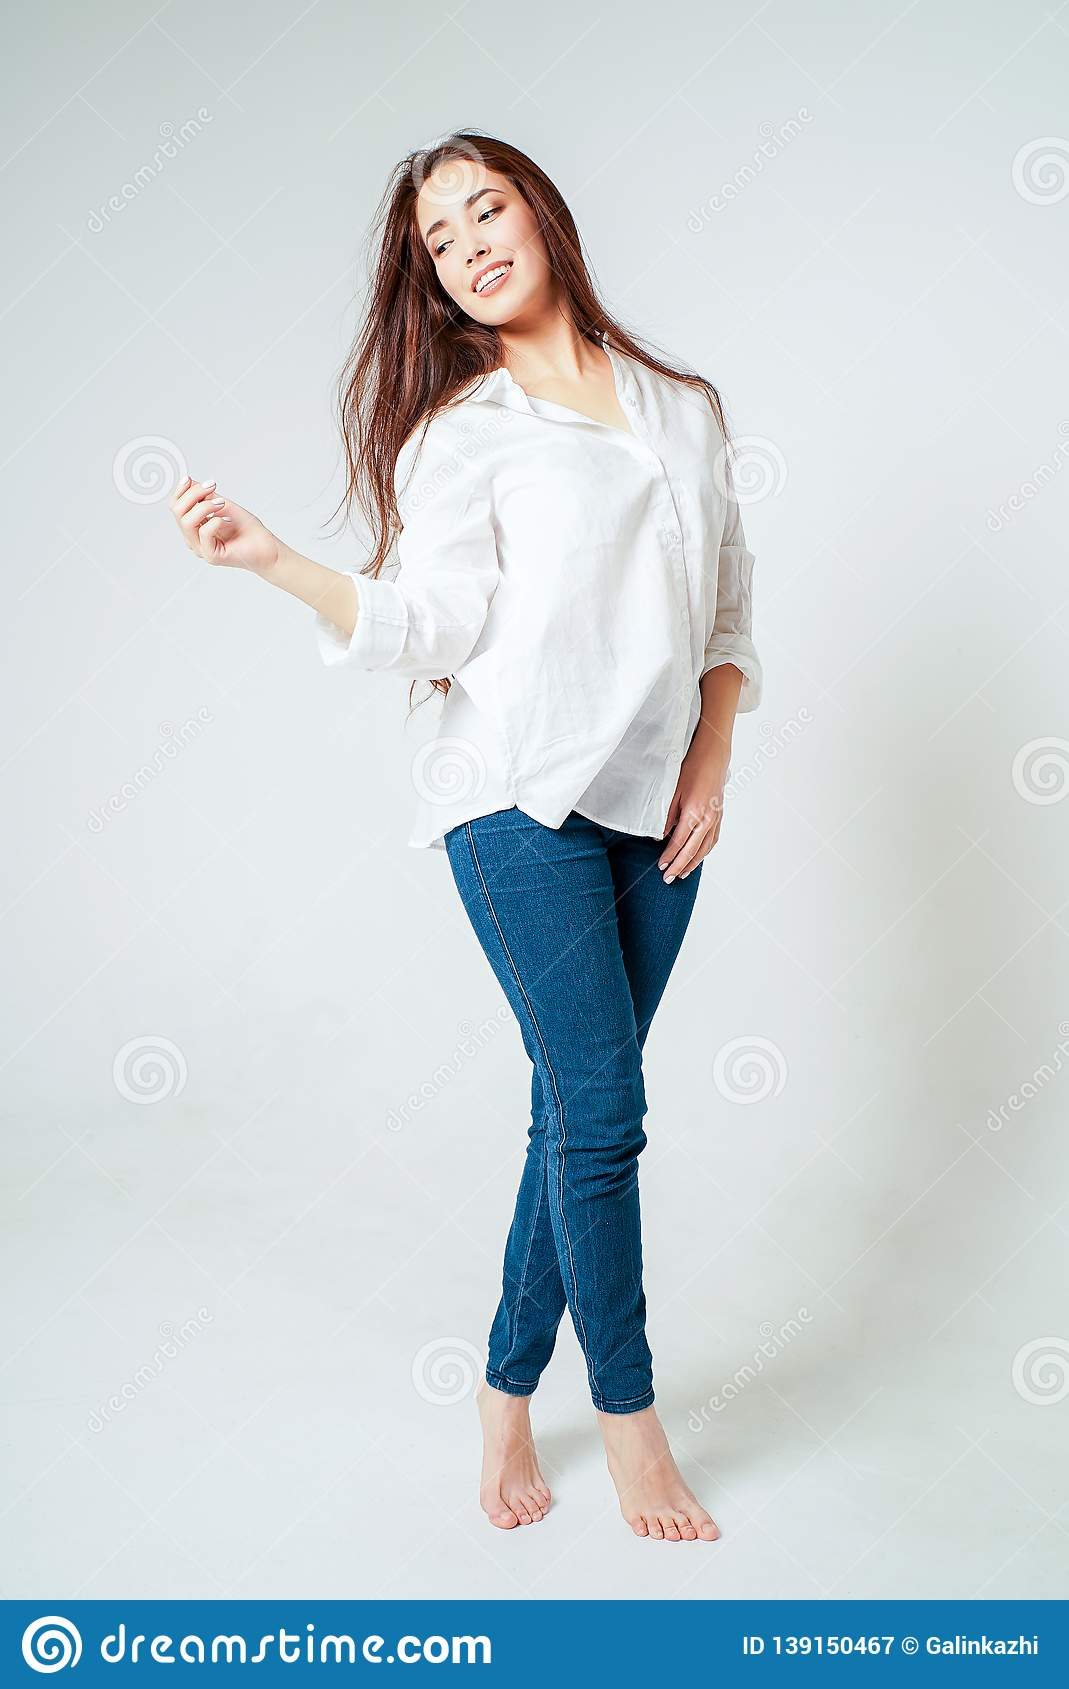 Beauty fashion full length portrait of smiling sensual asian young woman with dark long hair in white shirt on white background